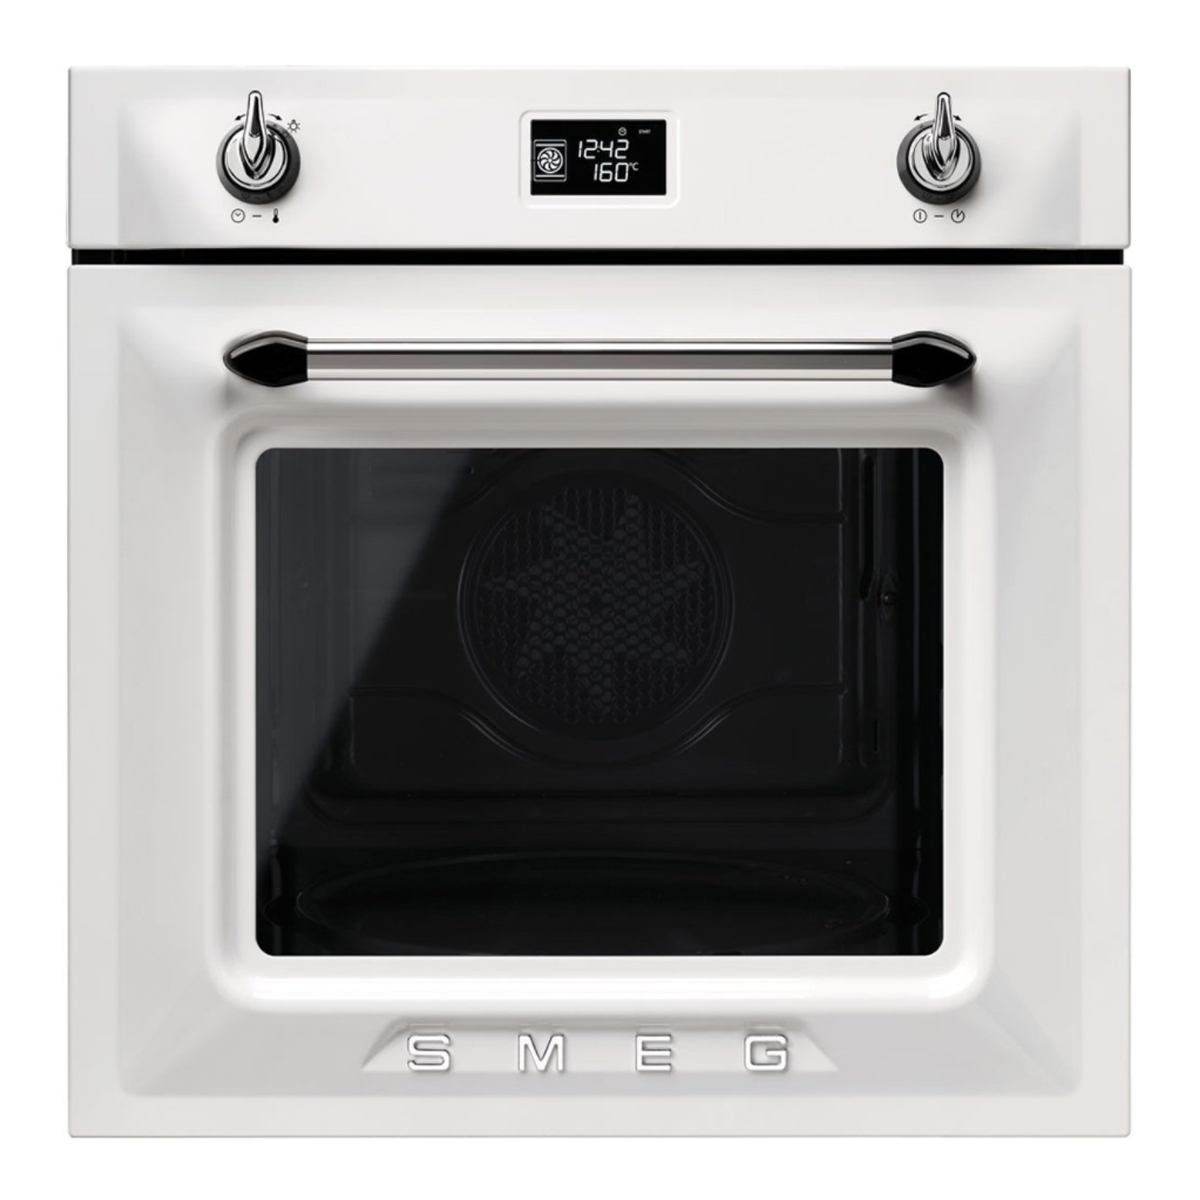 Smeg SFPA6925B Victoria Aesthetic Pyrolytic Built-In Oven